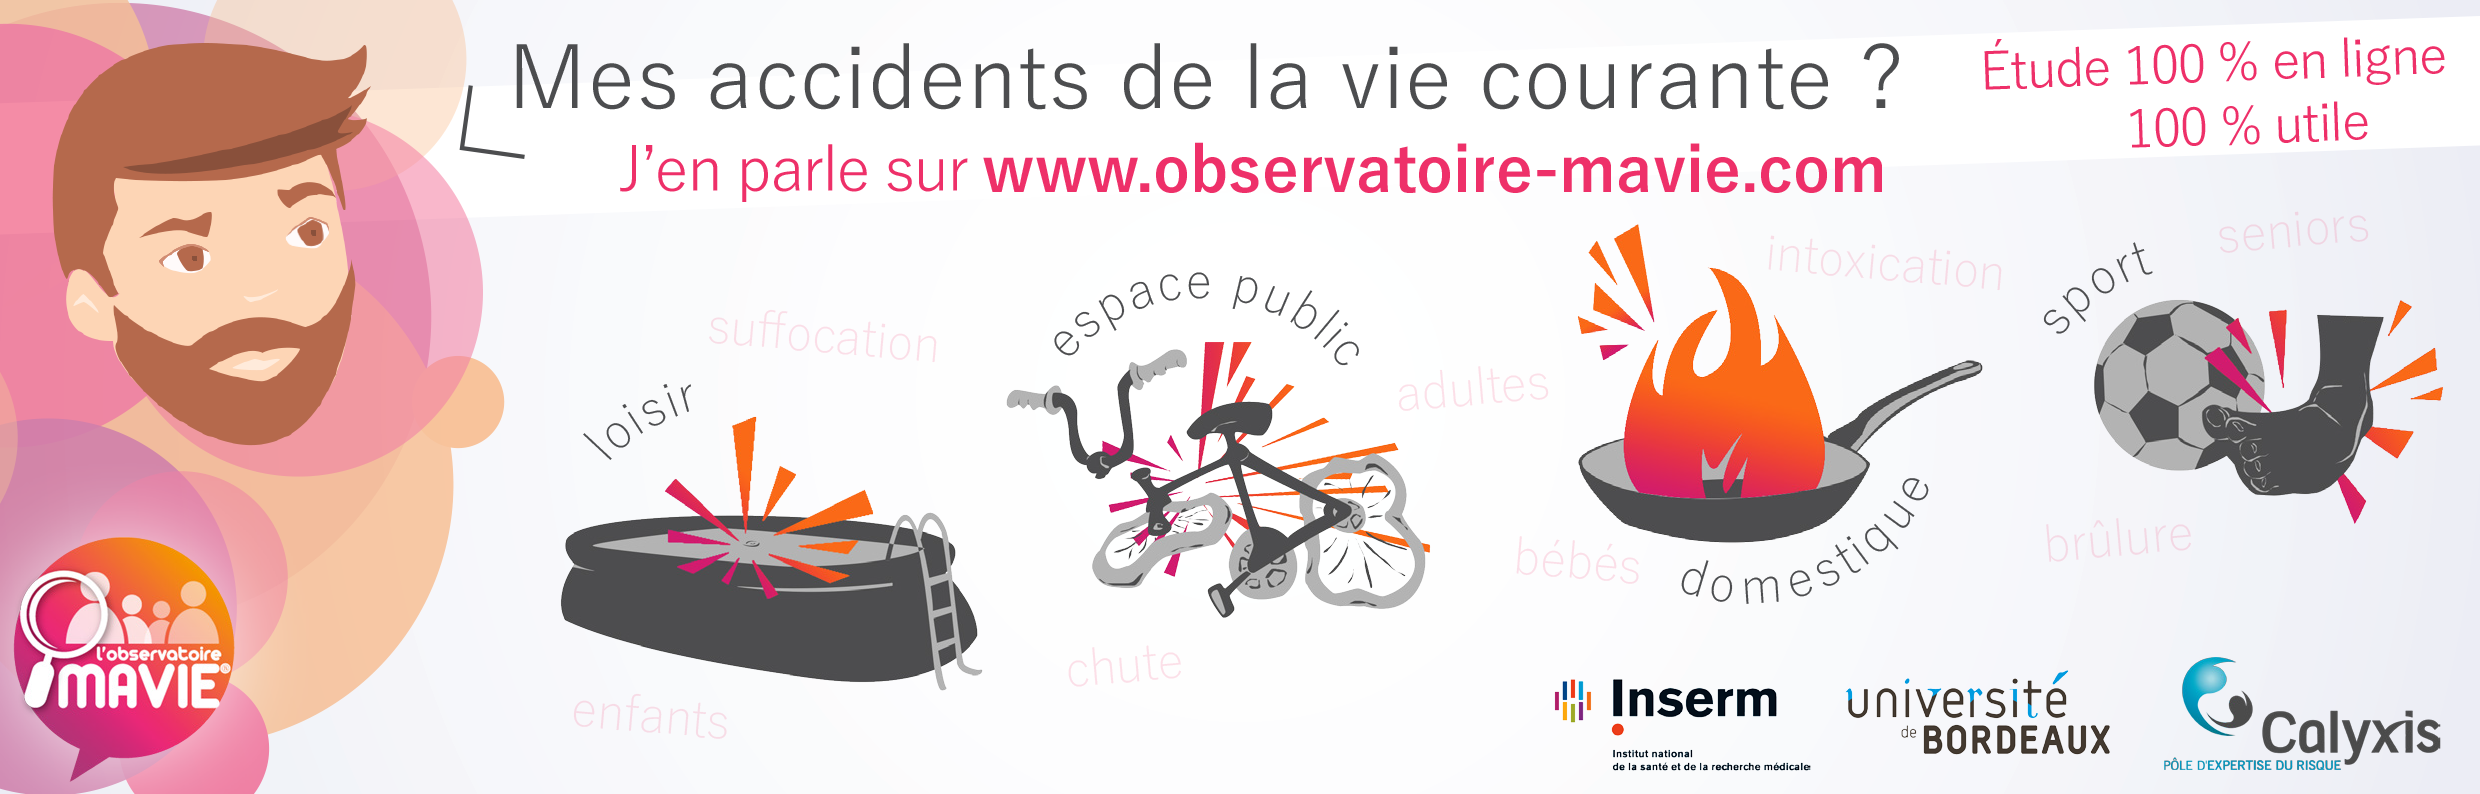 Bannière web MAVIE, bannière web observatoire MAVIE, bannière MAVIE, bannière observatoire MAVIE, communication observatoire MAVIE, communication étude MAVIE, participer à la recherche scientifique, devenir volontaire MAVIE, aider la recherche, recherche accidents, accidentologie, accidents de la vie courante, accidents domestiques